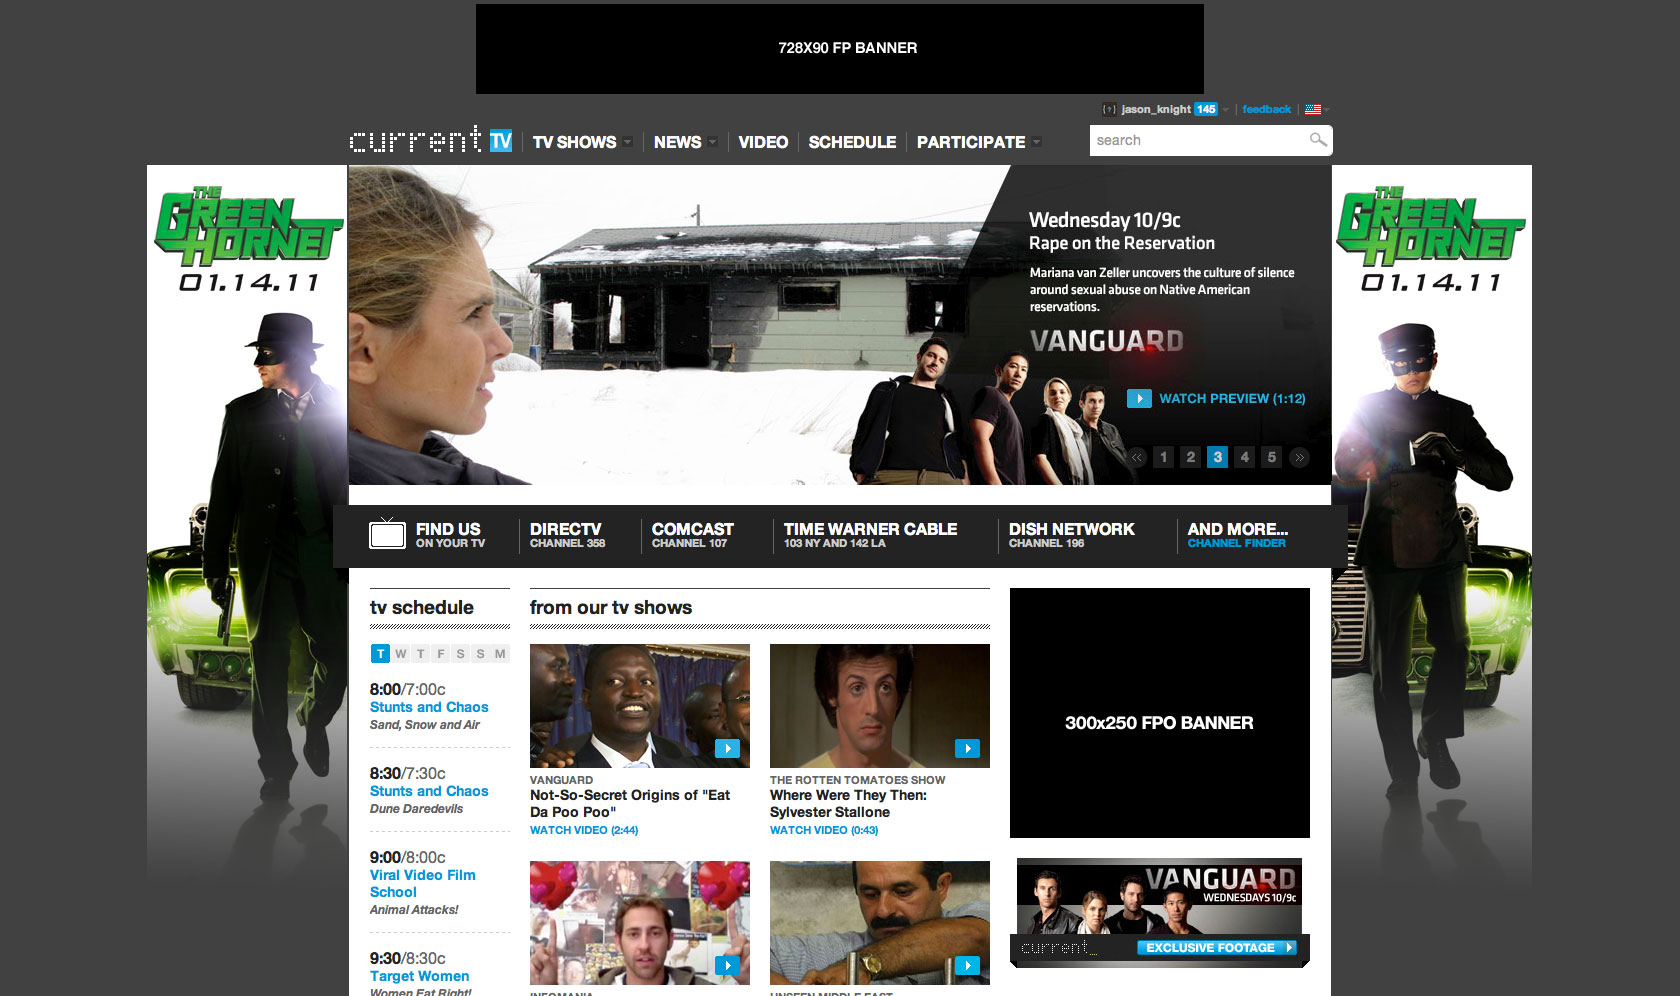 Green Hornet Homepage Takeover